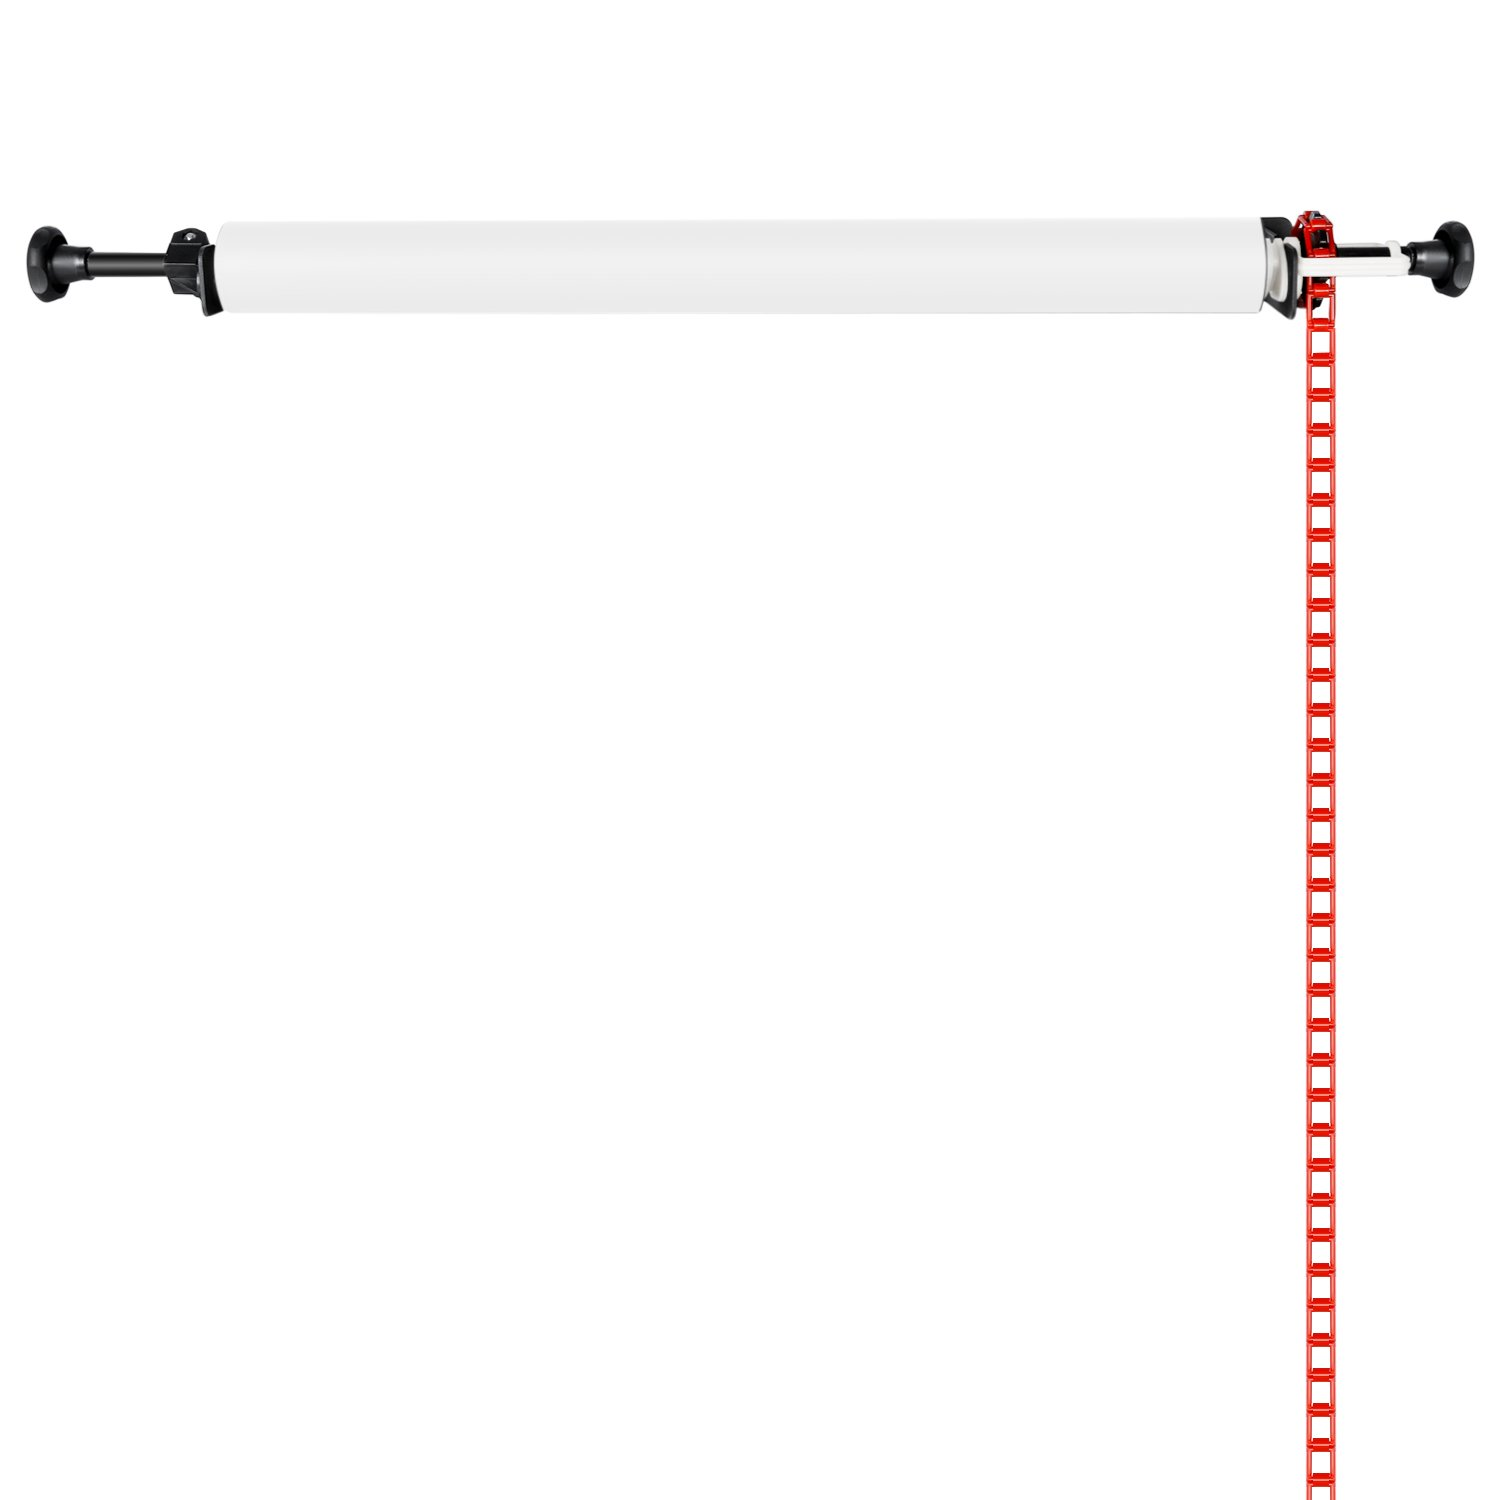 Neewer® Photography Single Roller Wall Mounting Manual Background Support System, including Two(2) Single hooks, Two(2) Expand bars, One(1) Chain, Eight(8)Clamp Screws.